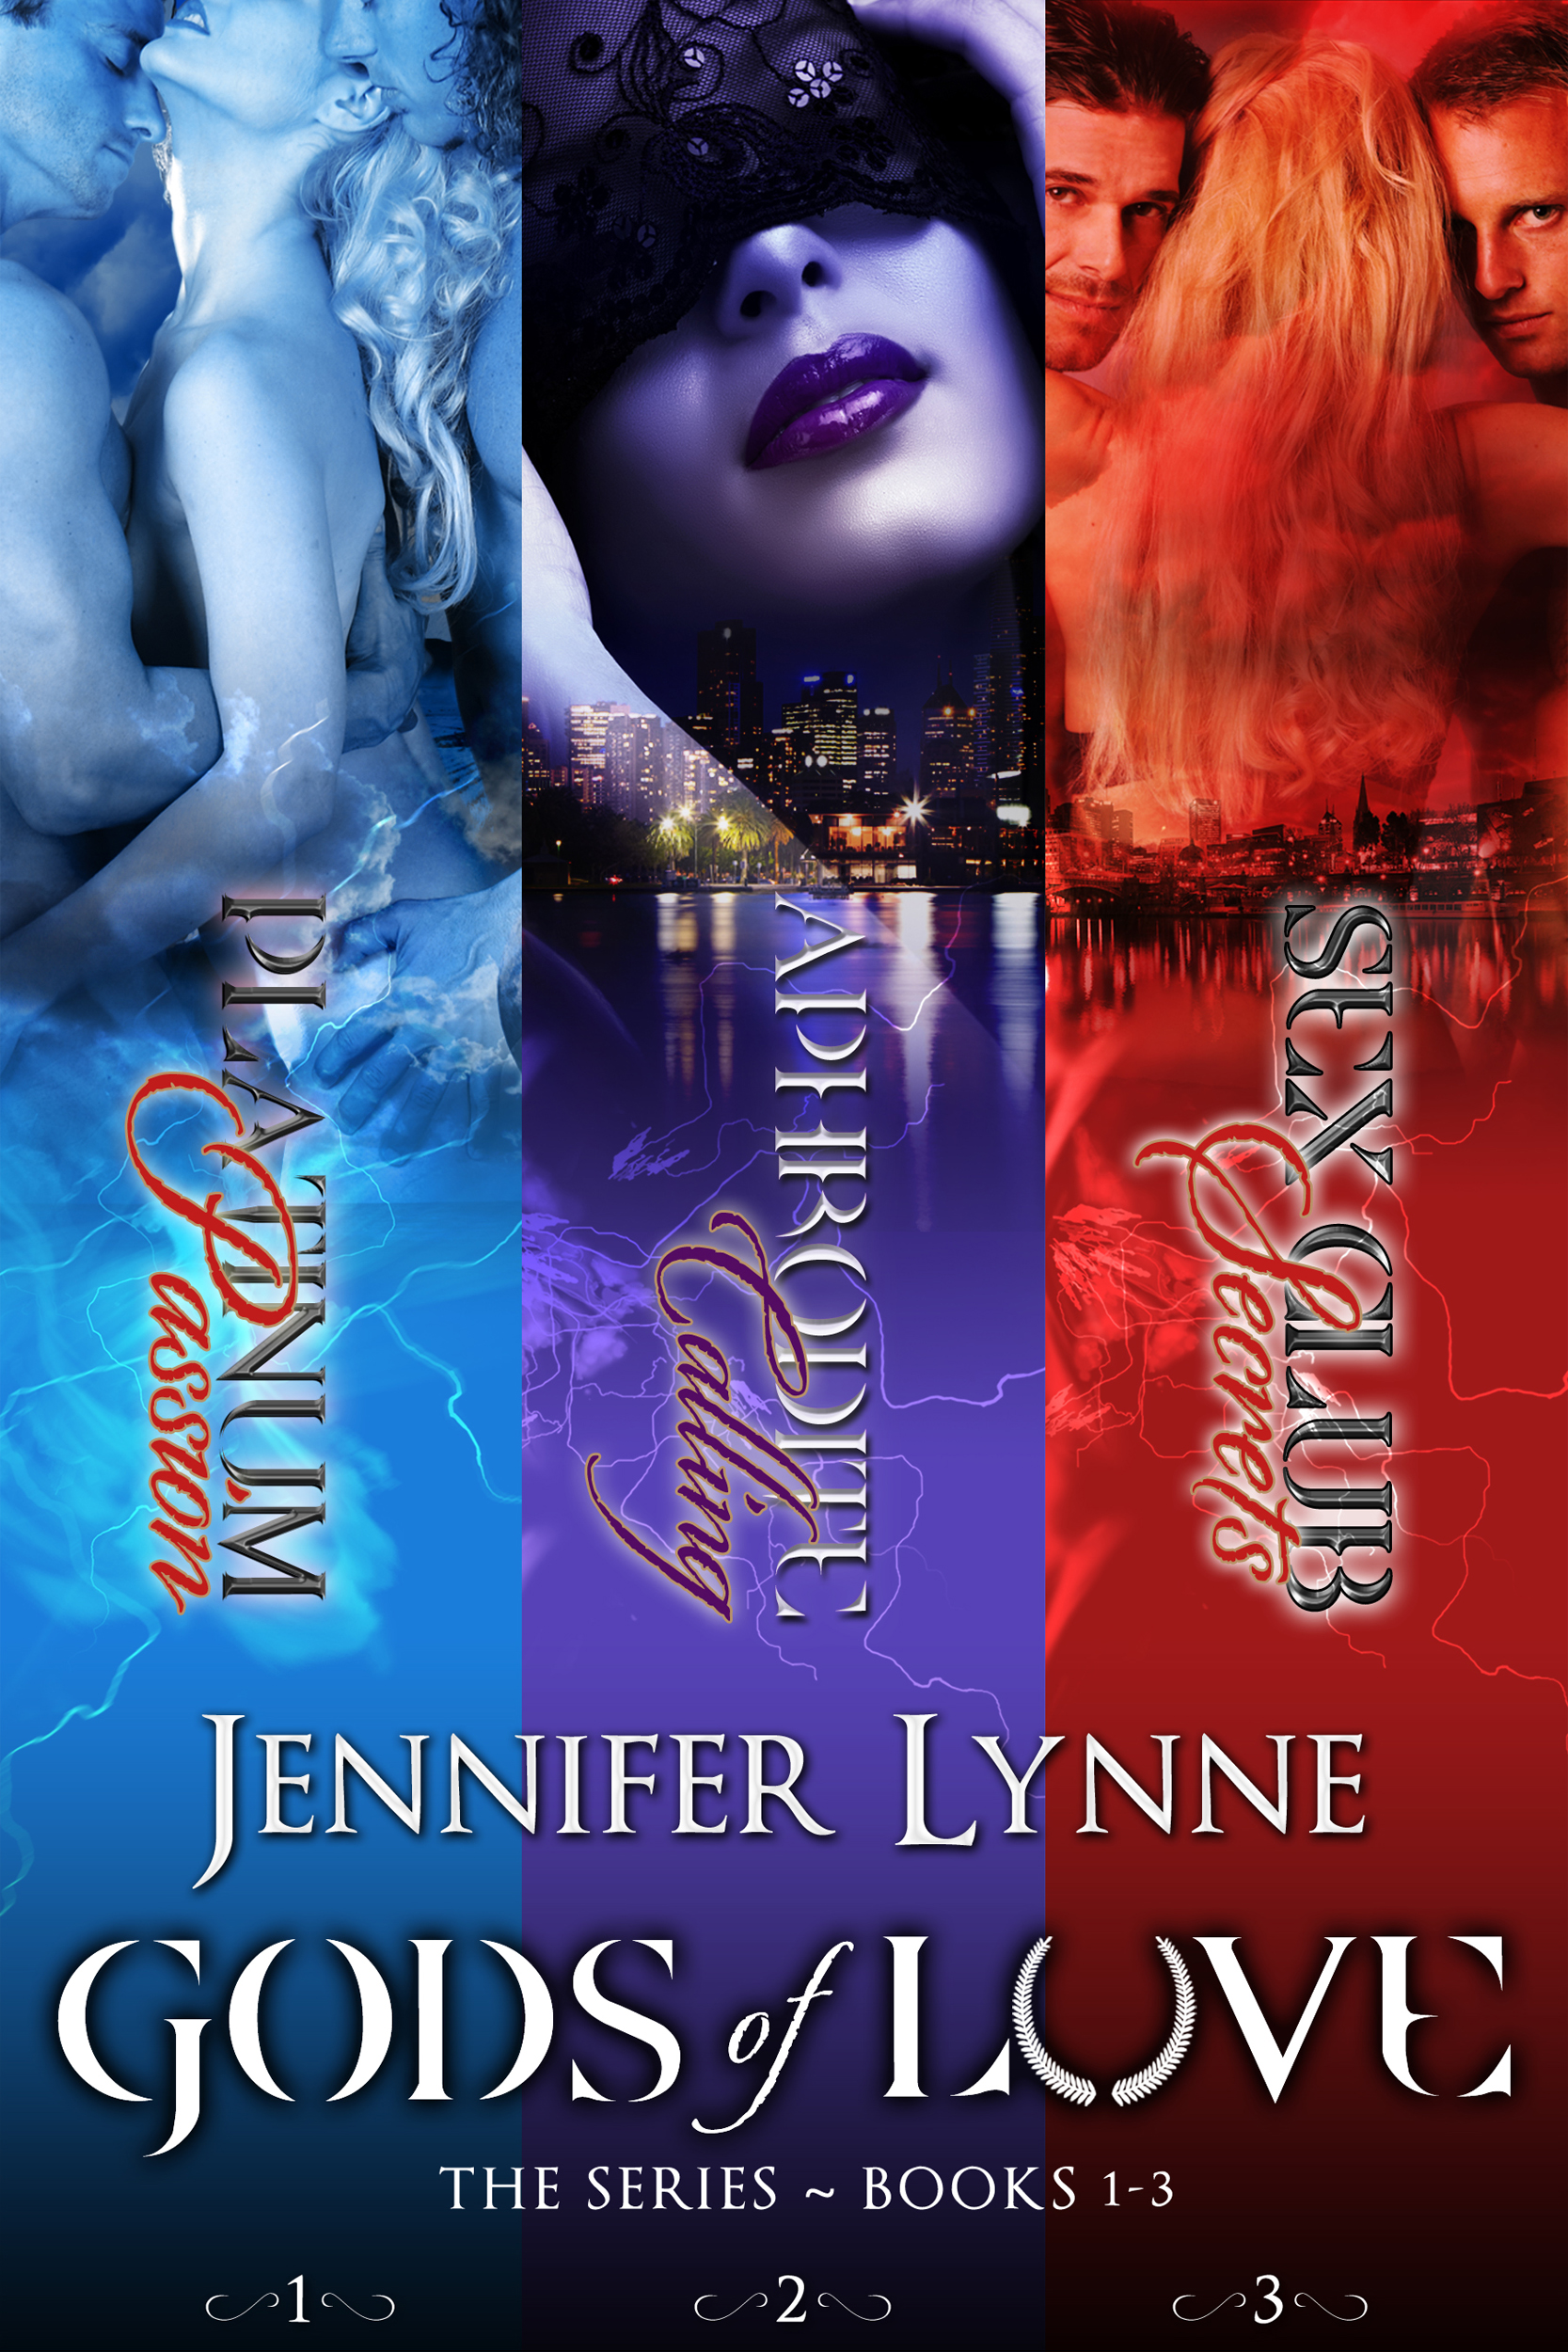 Jennifer Lynne - Gods of Love (1-3)